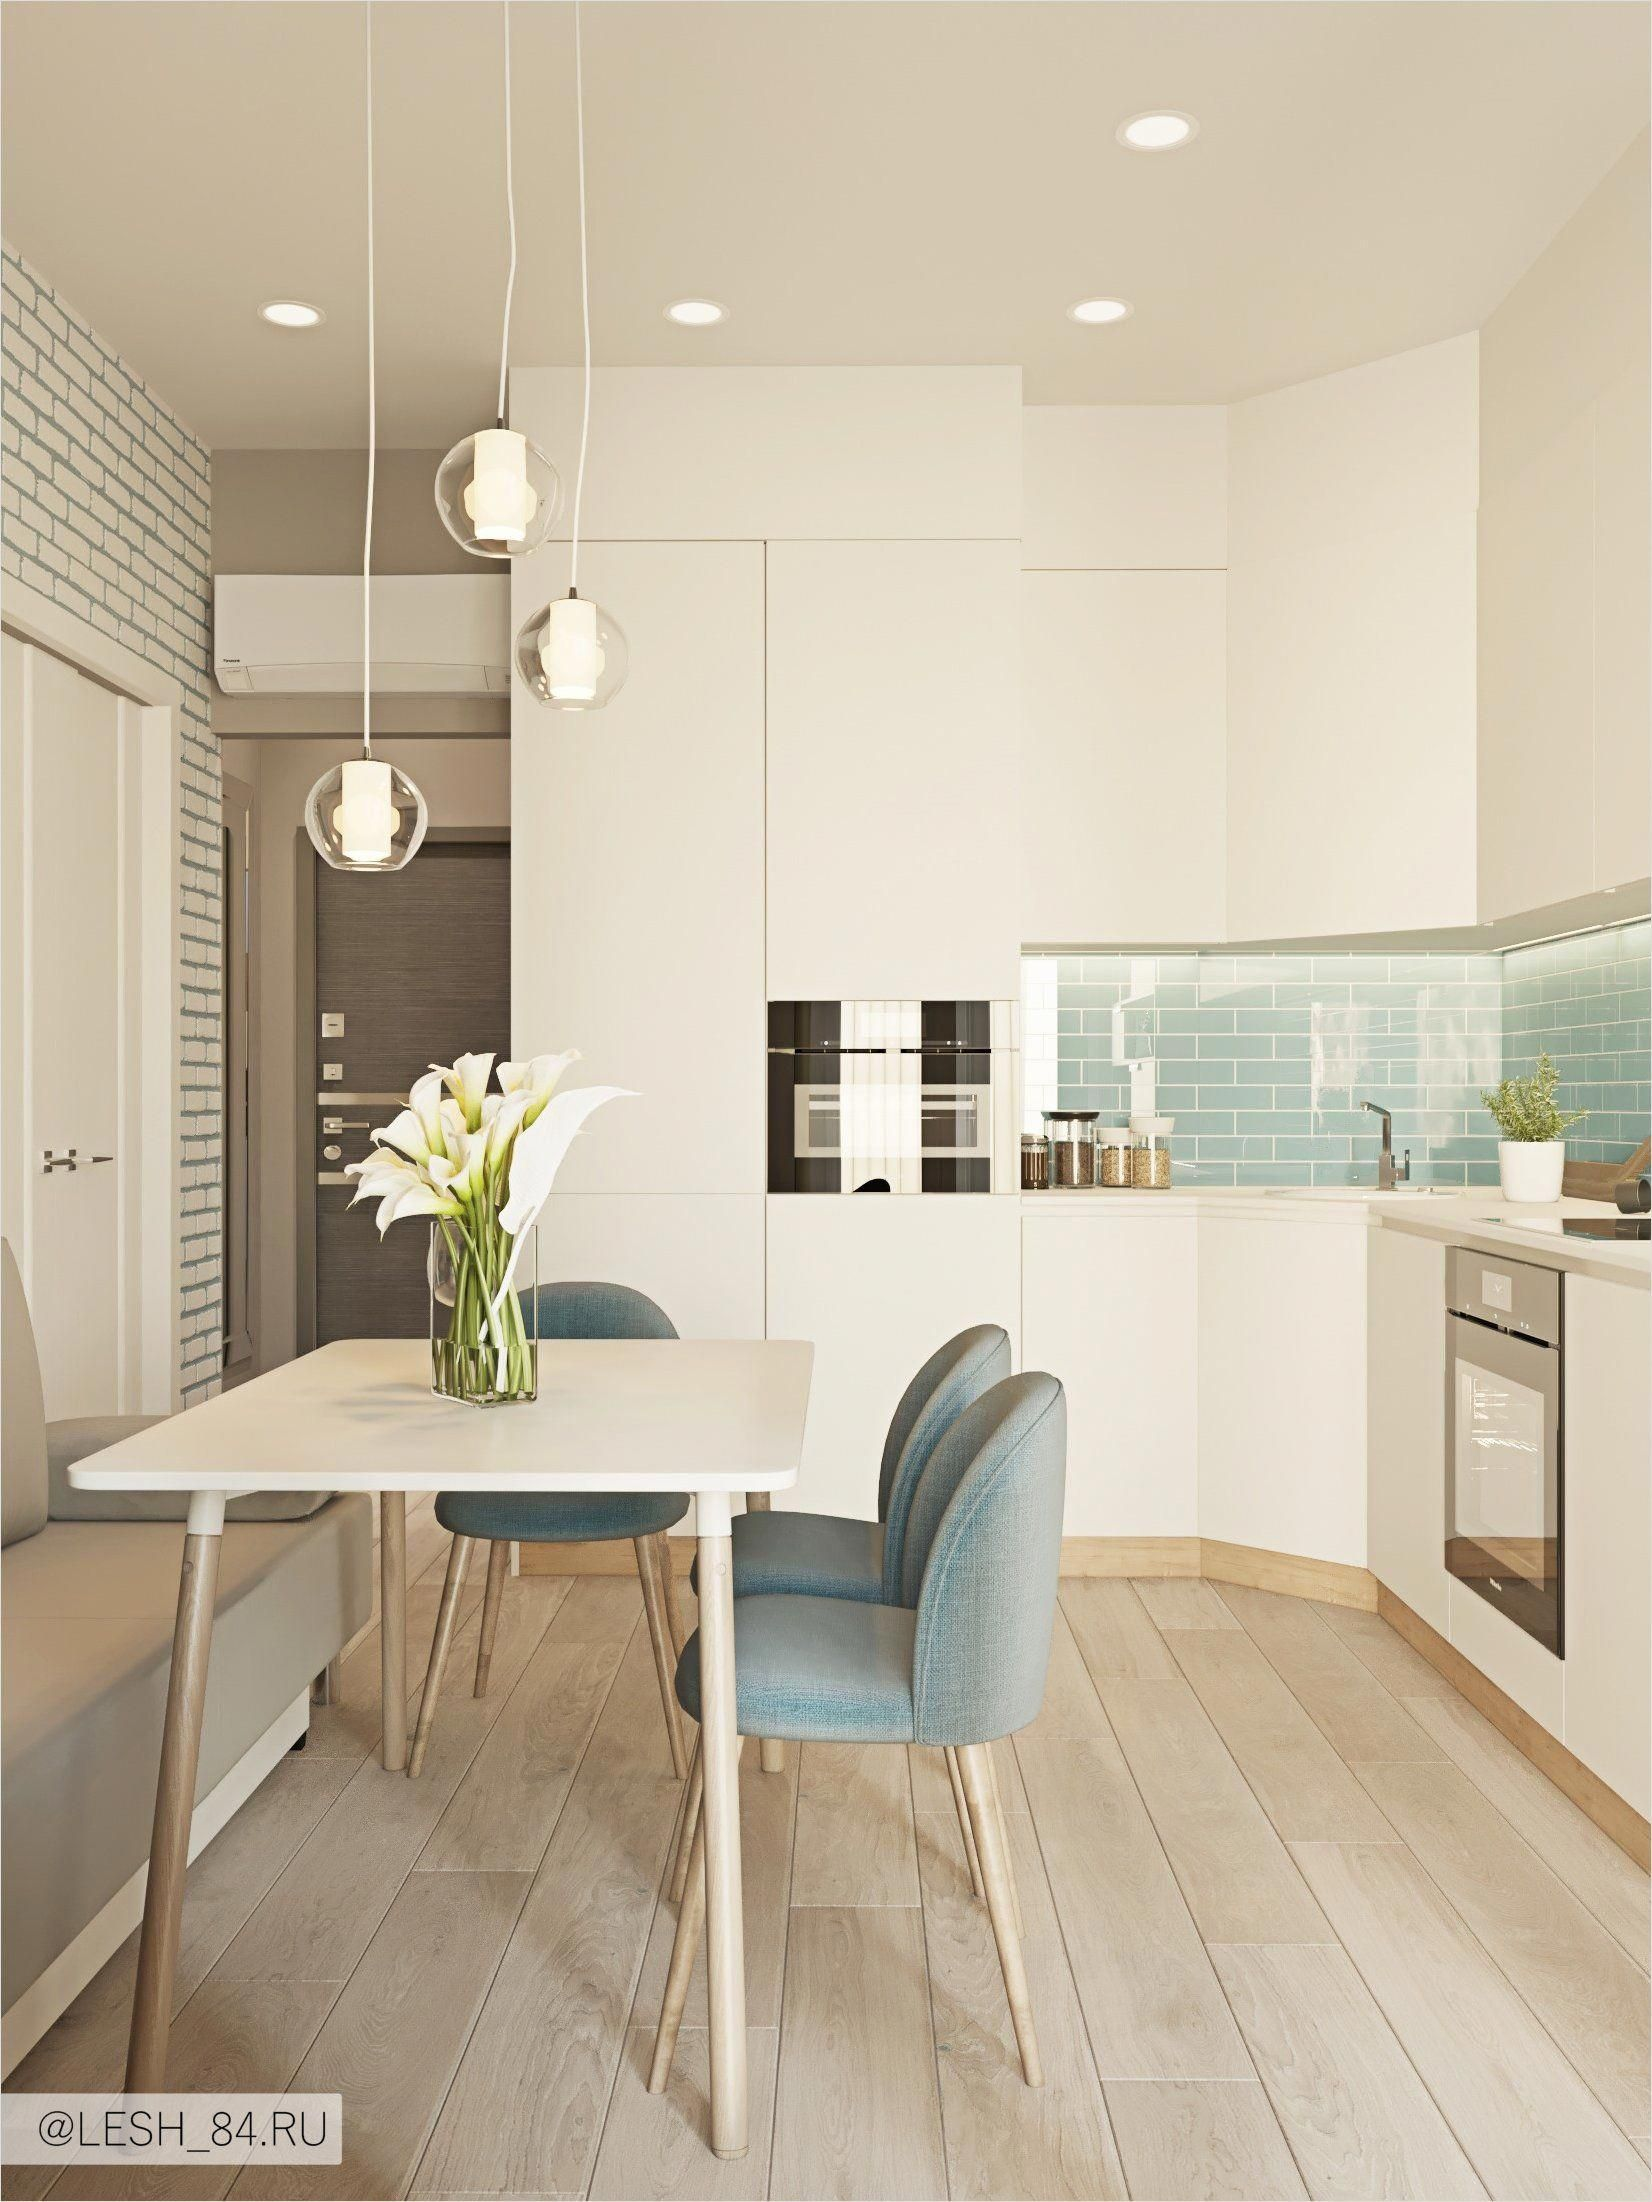 Small kitchen in soothing colors modernhomedesign also modele de bucatarii pe alb idei design interior rh pinterest